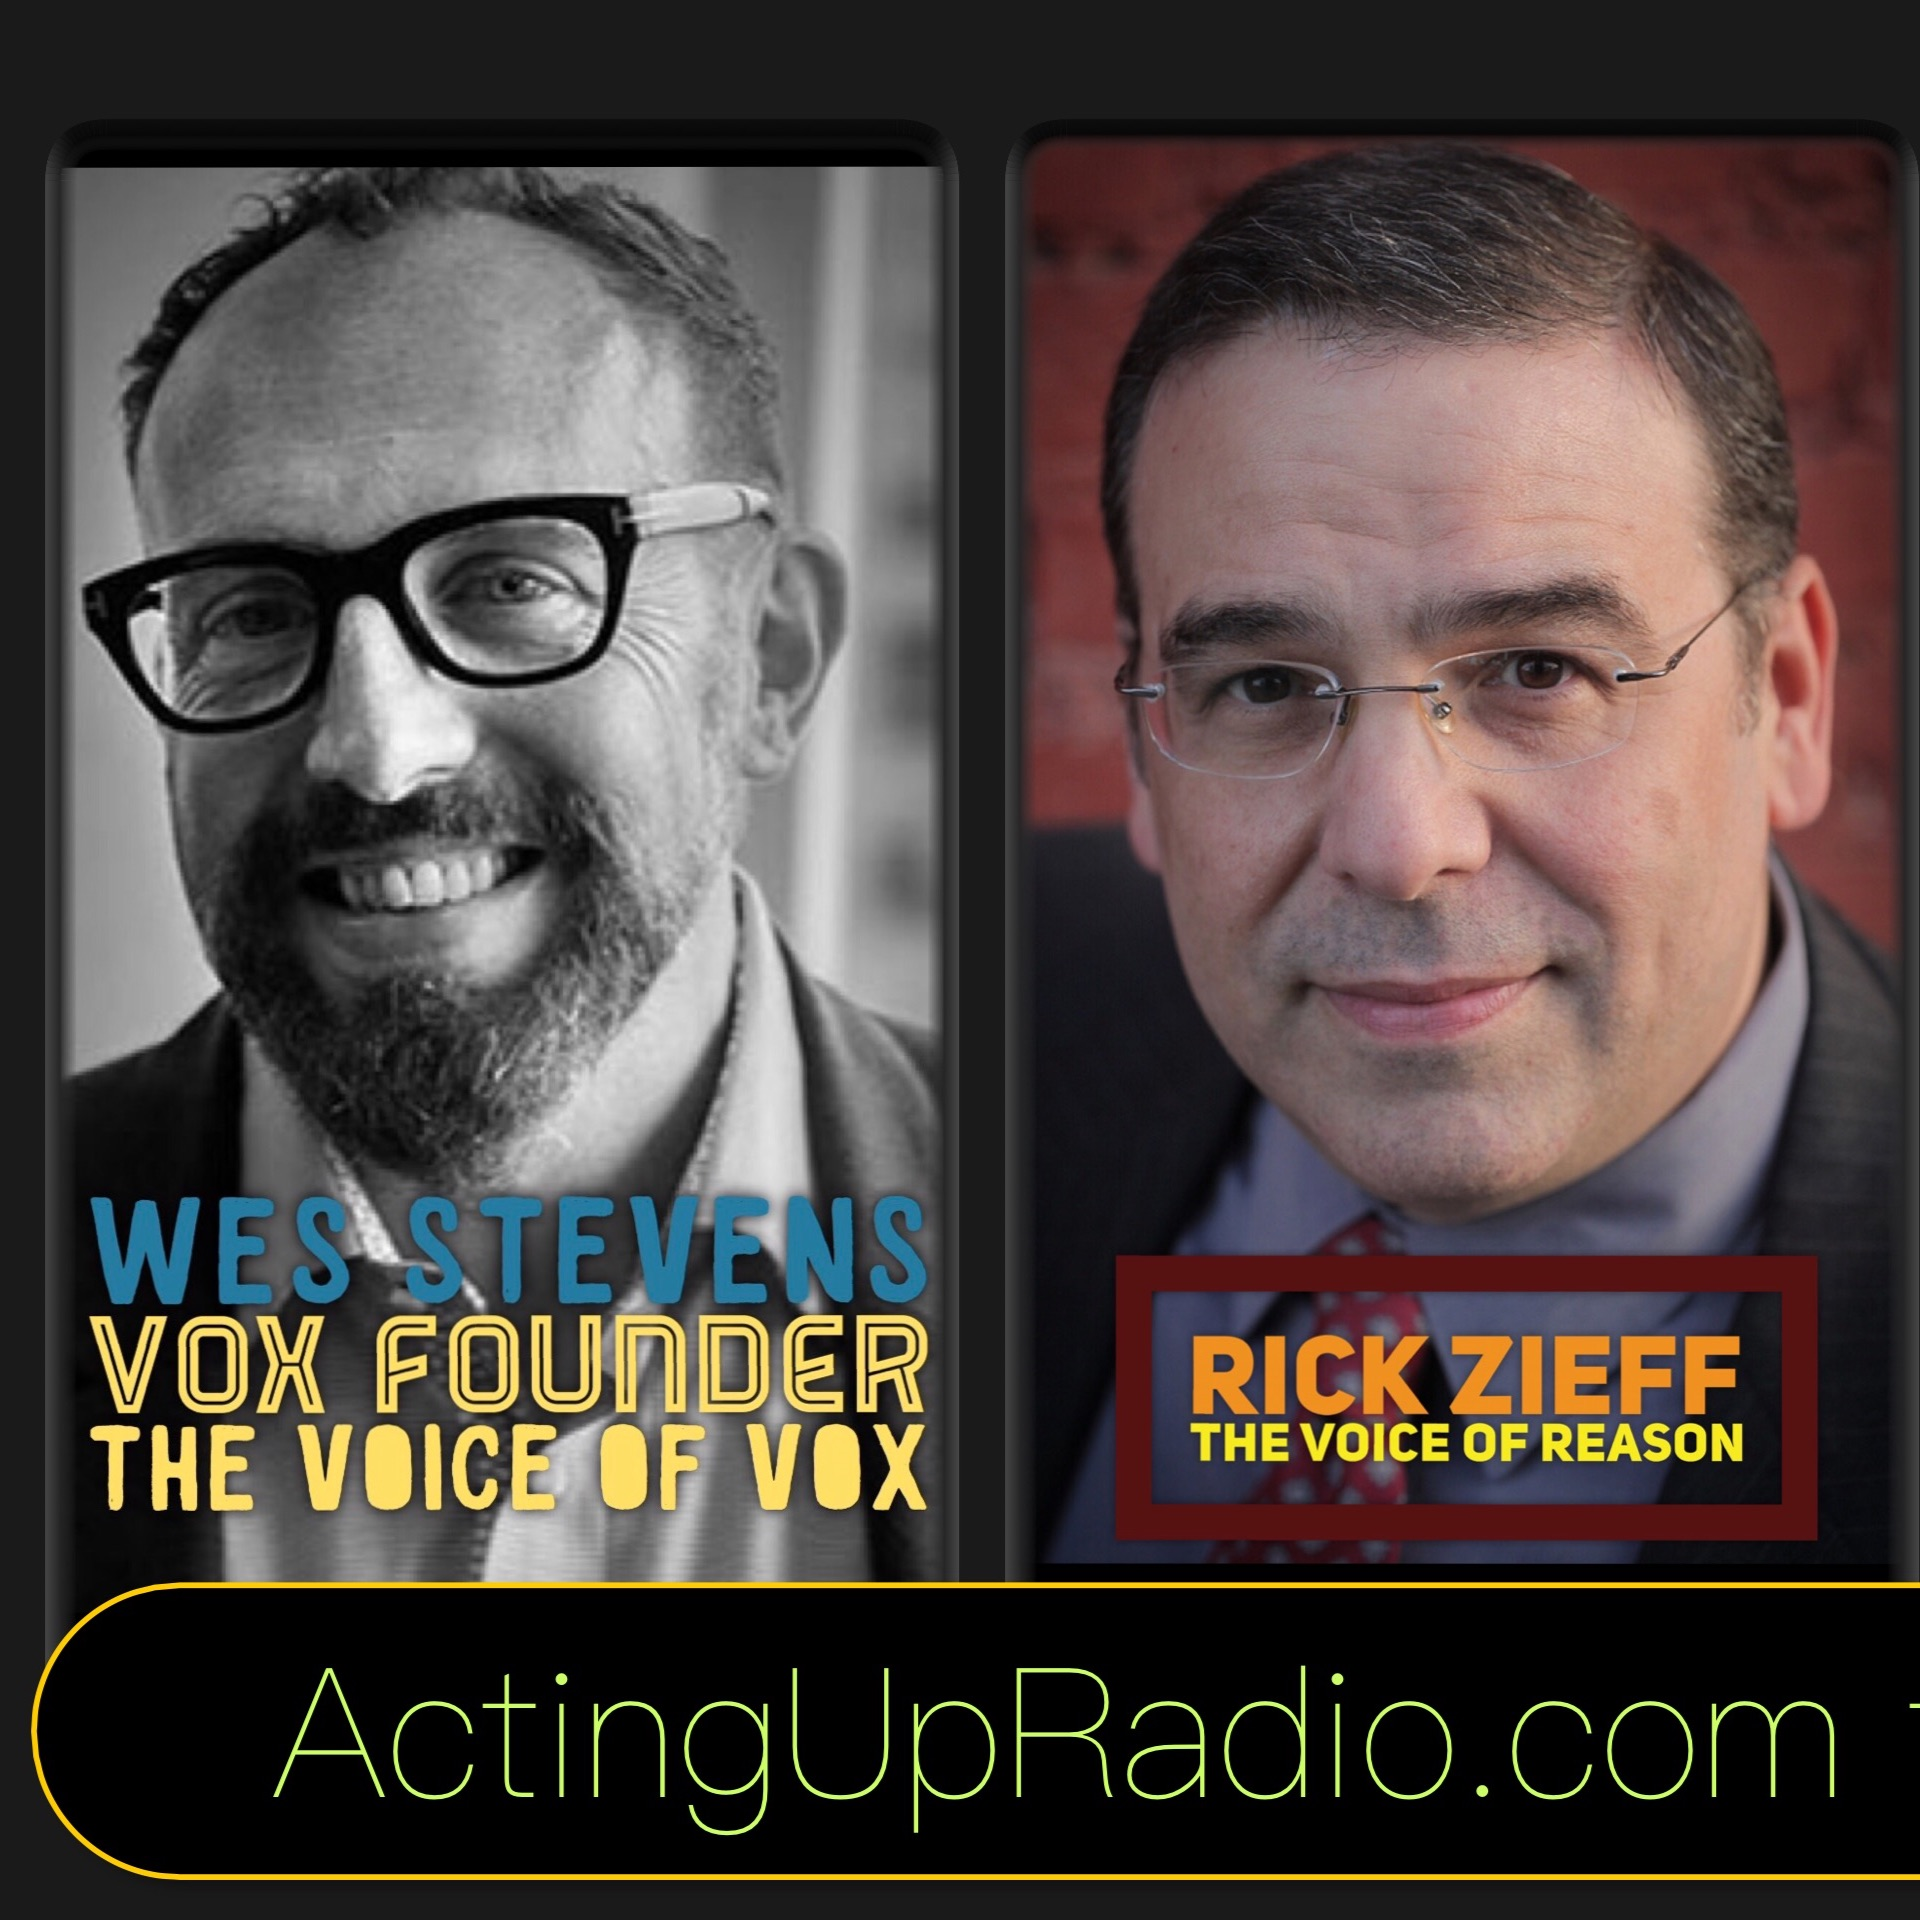 This Weeks Acting Up Radio ! Wes Stevens VOX, Rick Zieff, Kevin E West